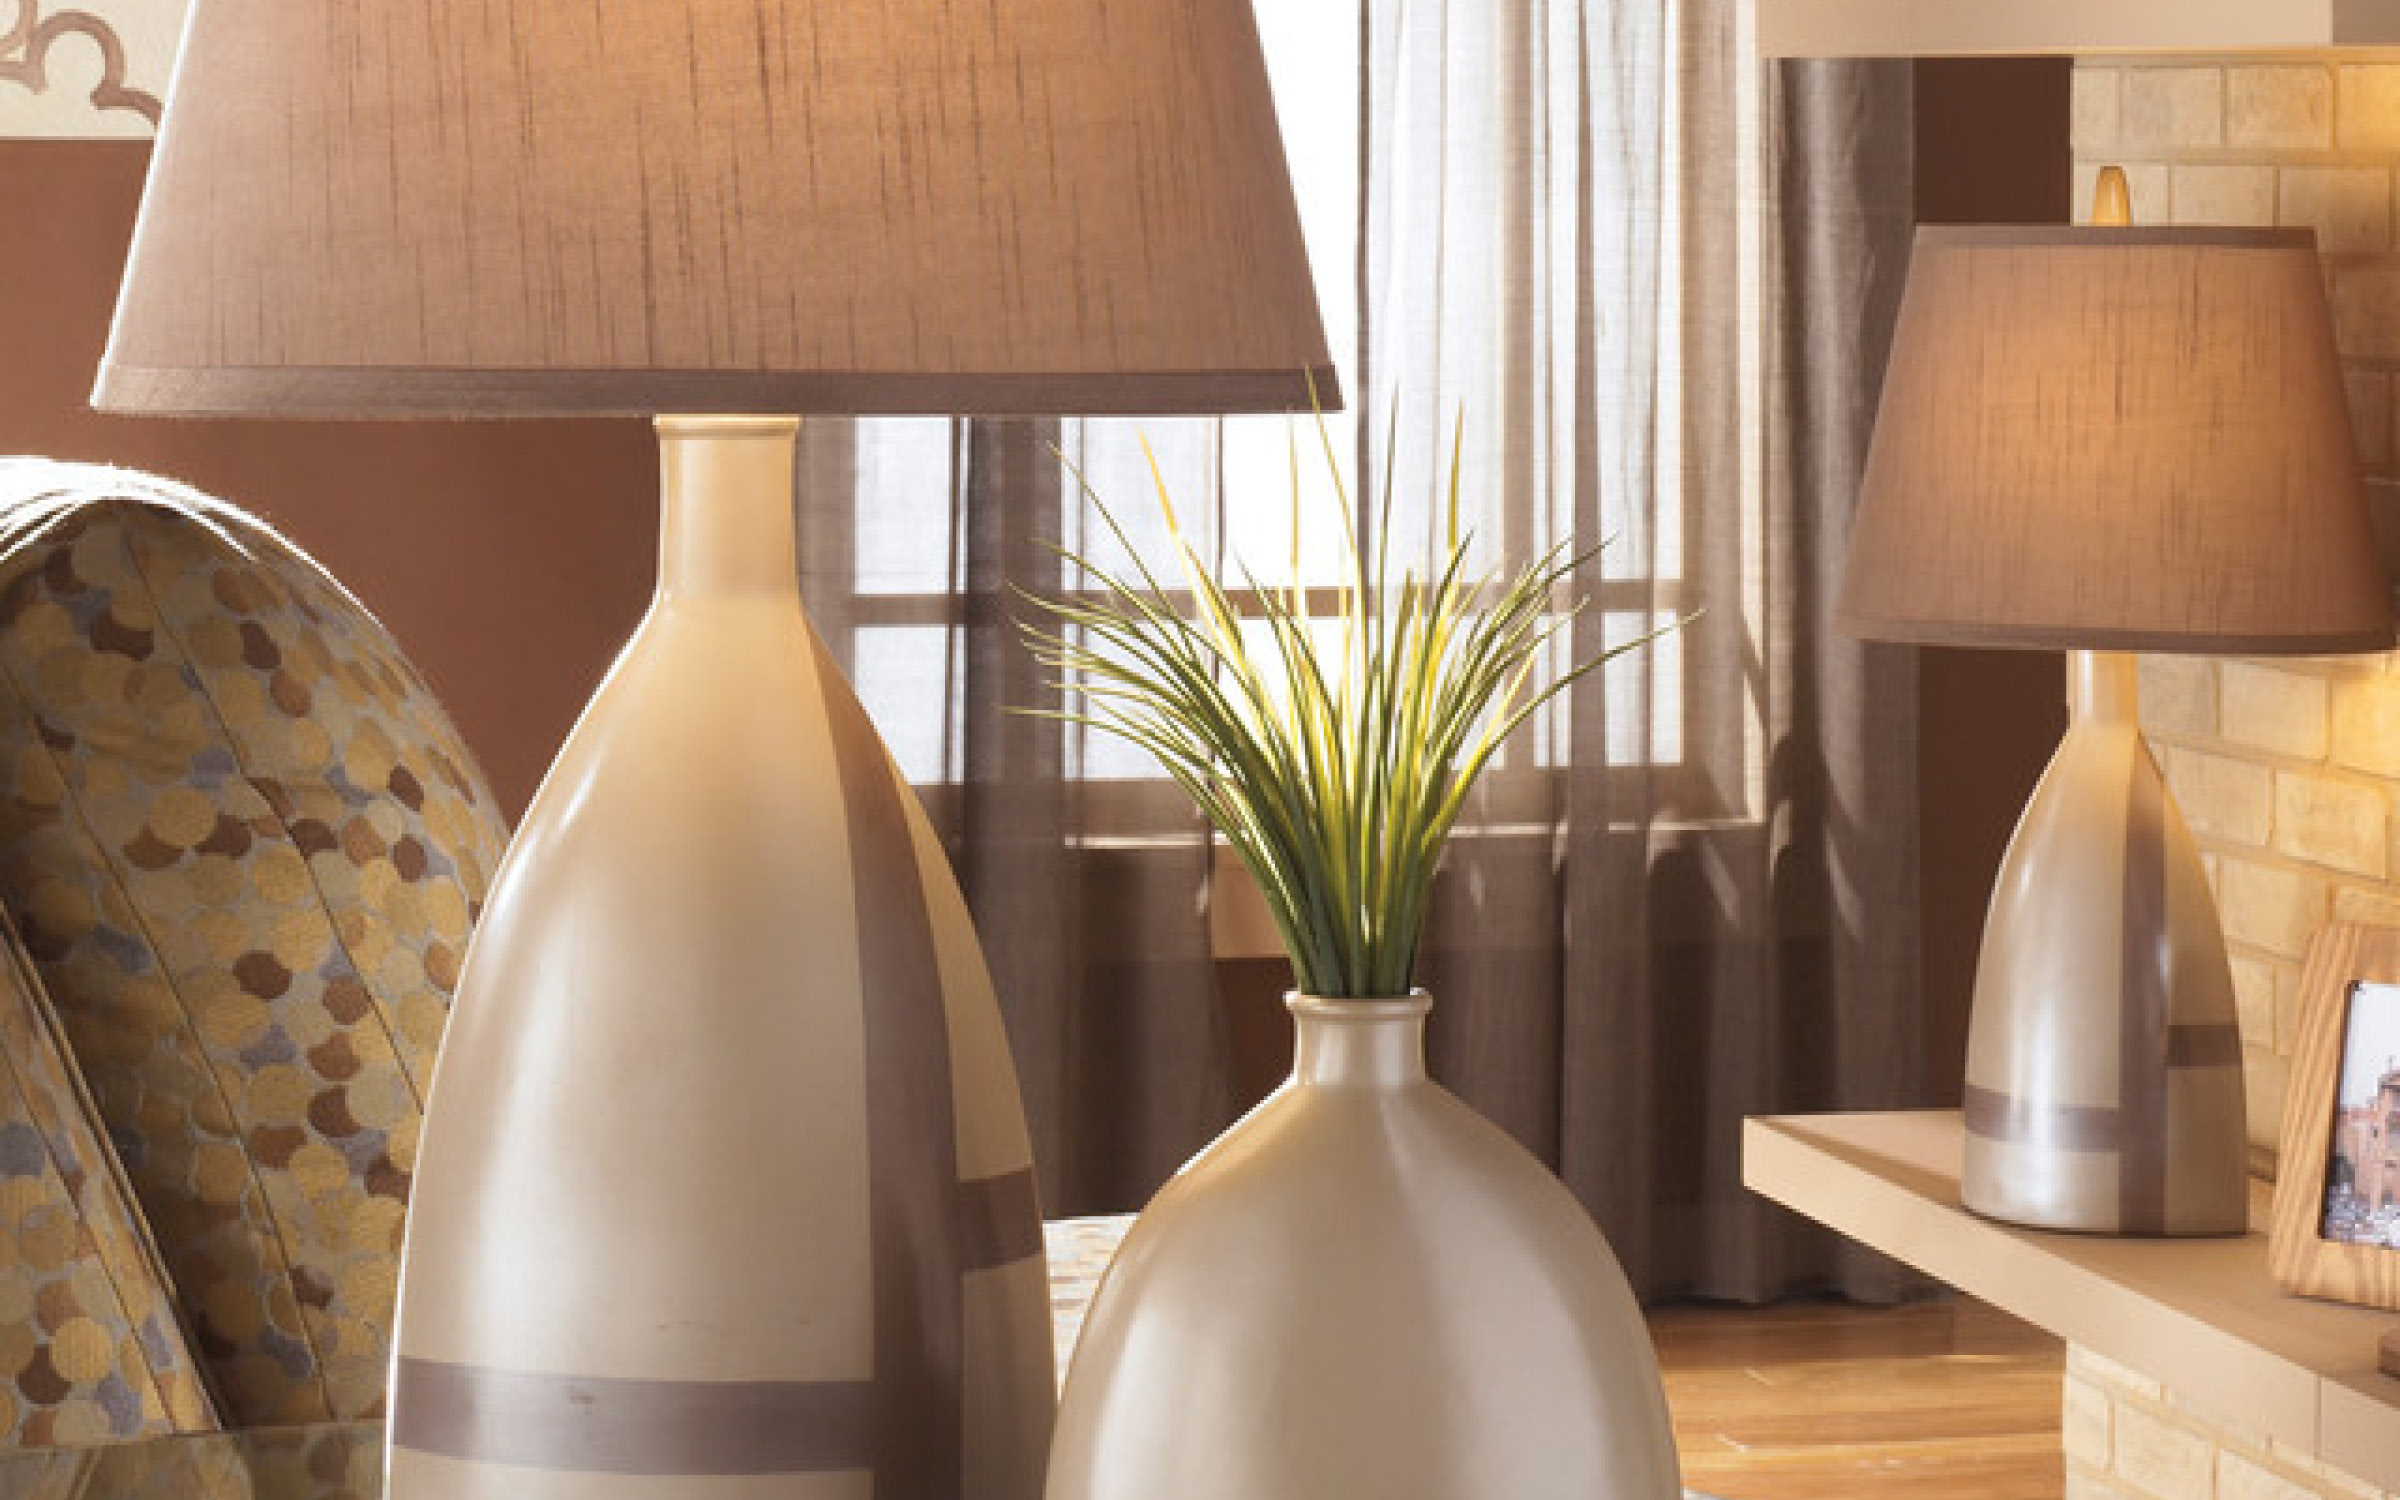 Sleek Table Lamp by Ashley  | iFurnish, Frisco, CO